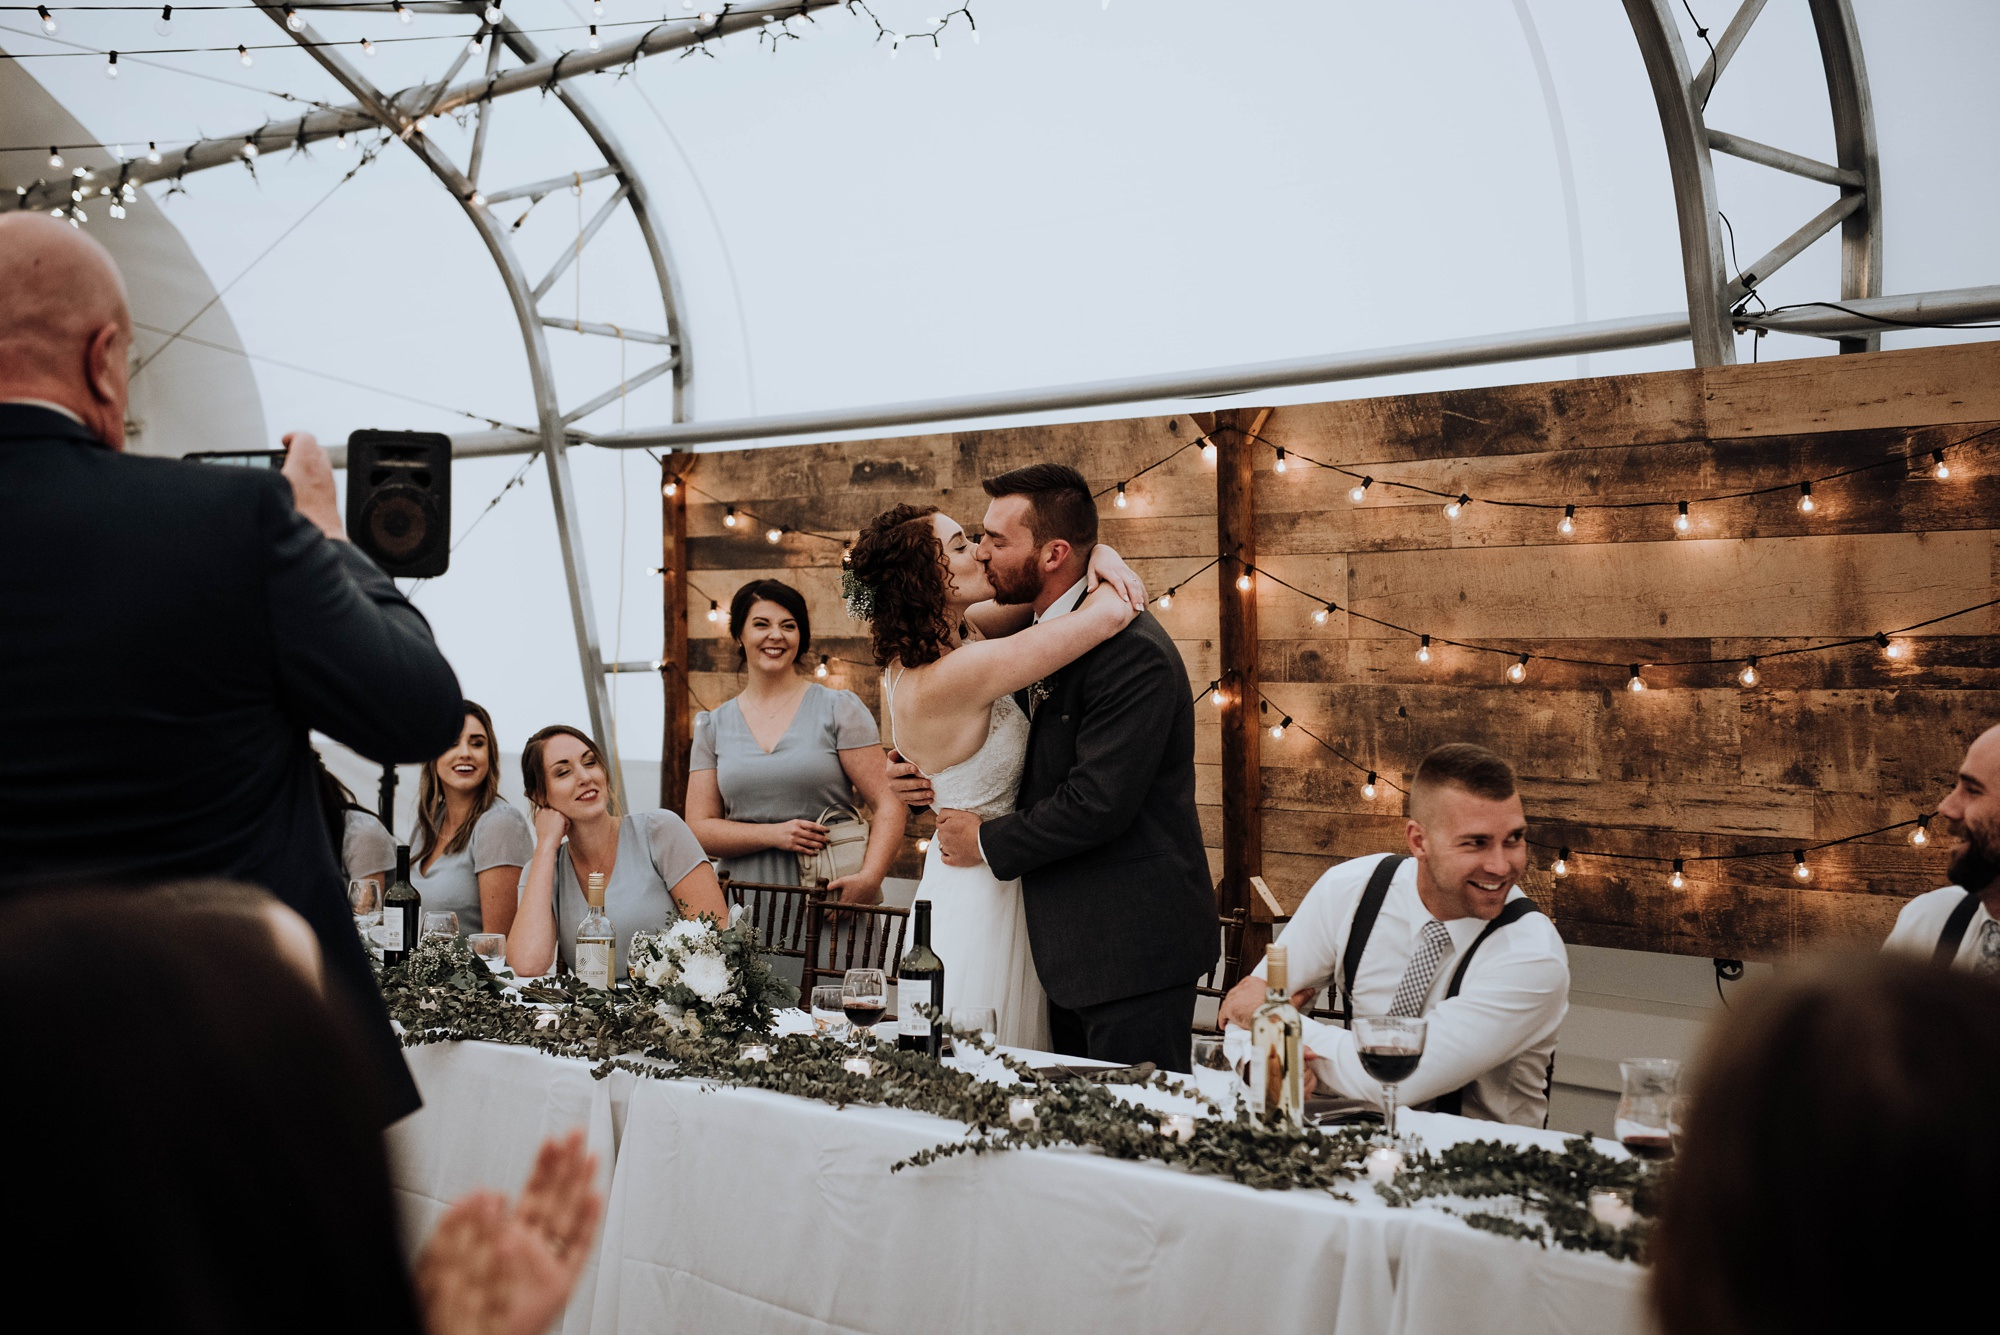 bride and groom perform a song instead of a first dance at run and romantic wedding captured at the river spirit golf course in calgarya